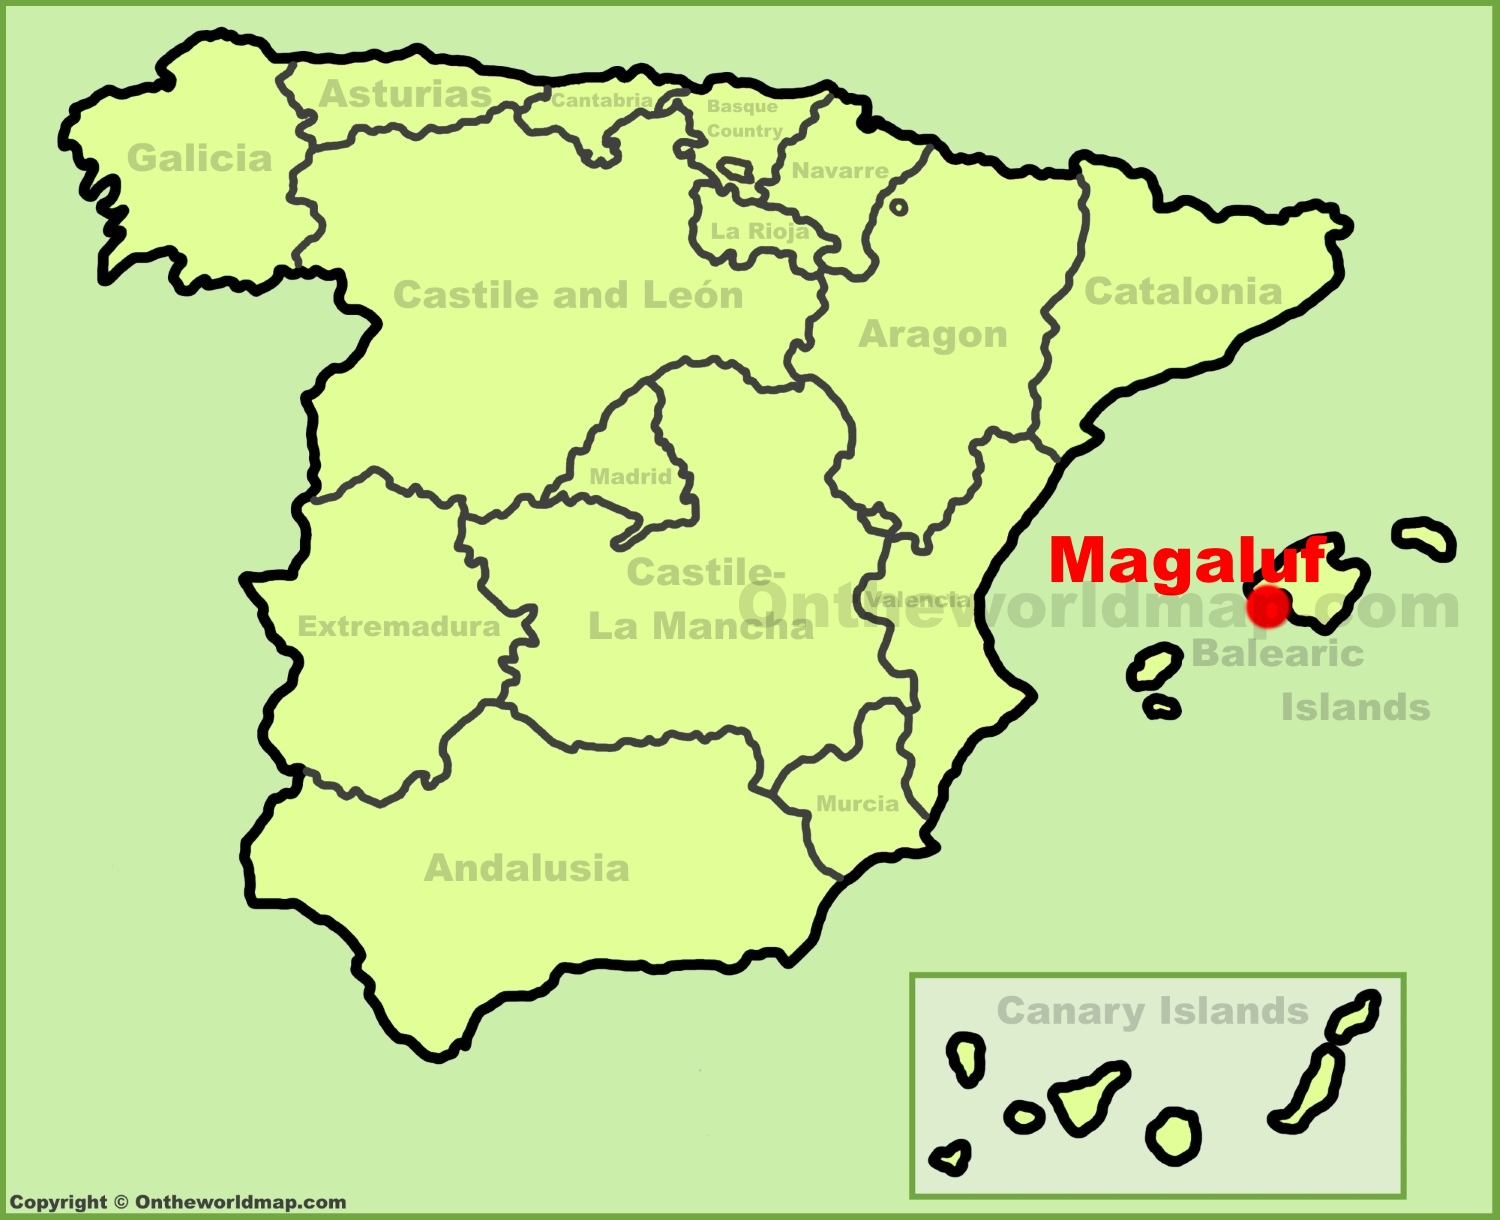 Magaluf location on the Spain map